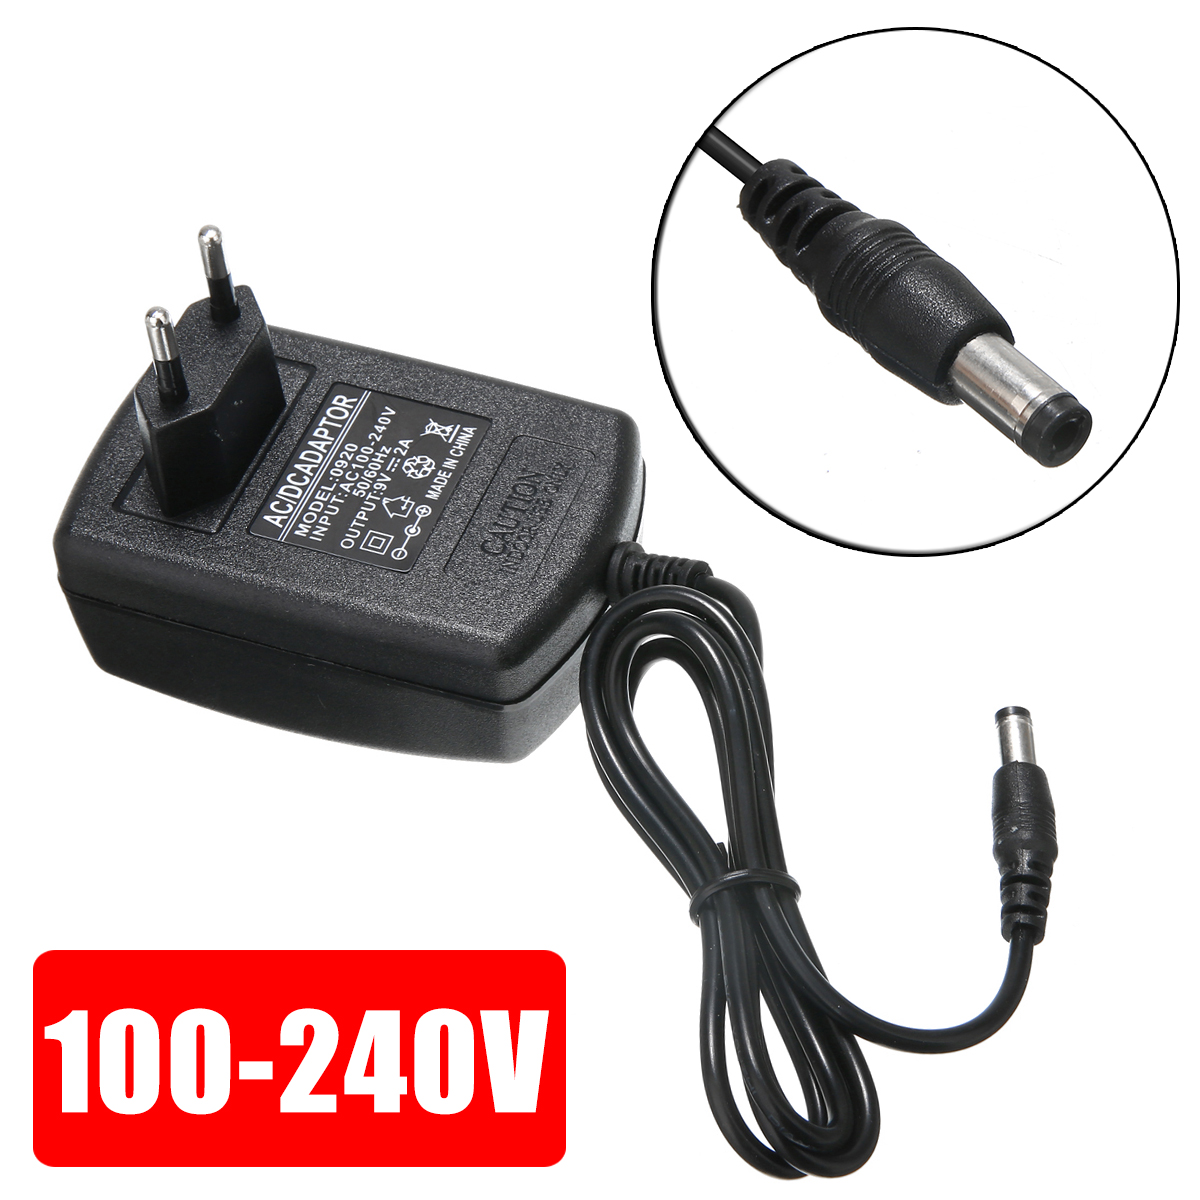 EU Plug <font><b>Adapter</b></font> AC 100-240V To DC <font><b>9V</b></font> <font><b>2A</b></font> Converter <font><b>power</b></font> <font><b>Adapter</b></font> <font><b>Power</b></font> Supply Charger Connector 2.1*5.5mm image